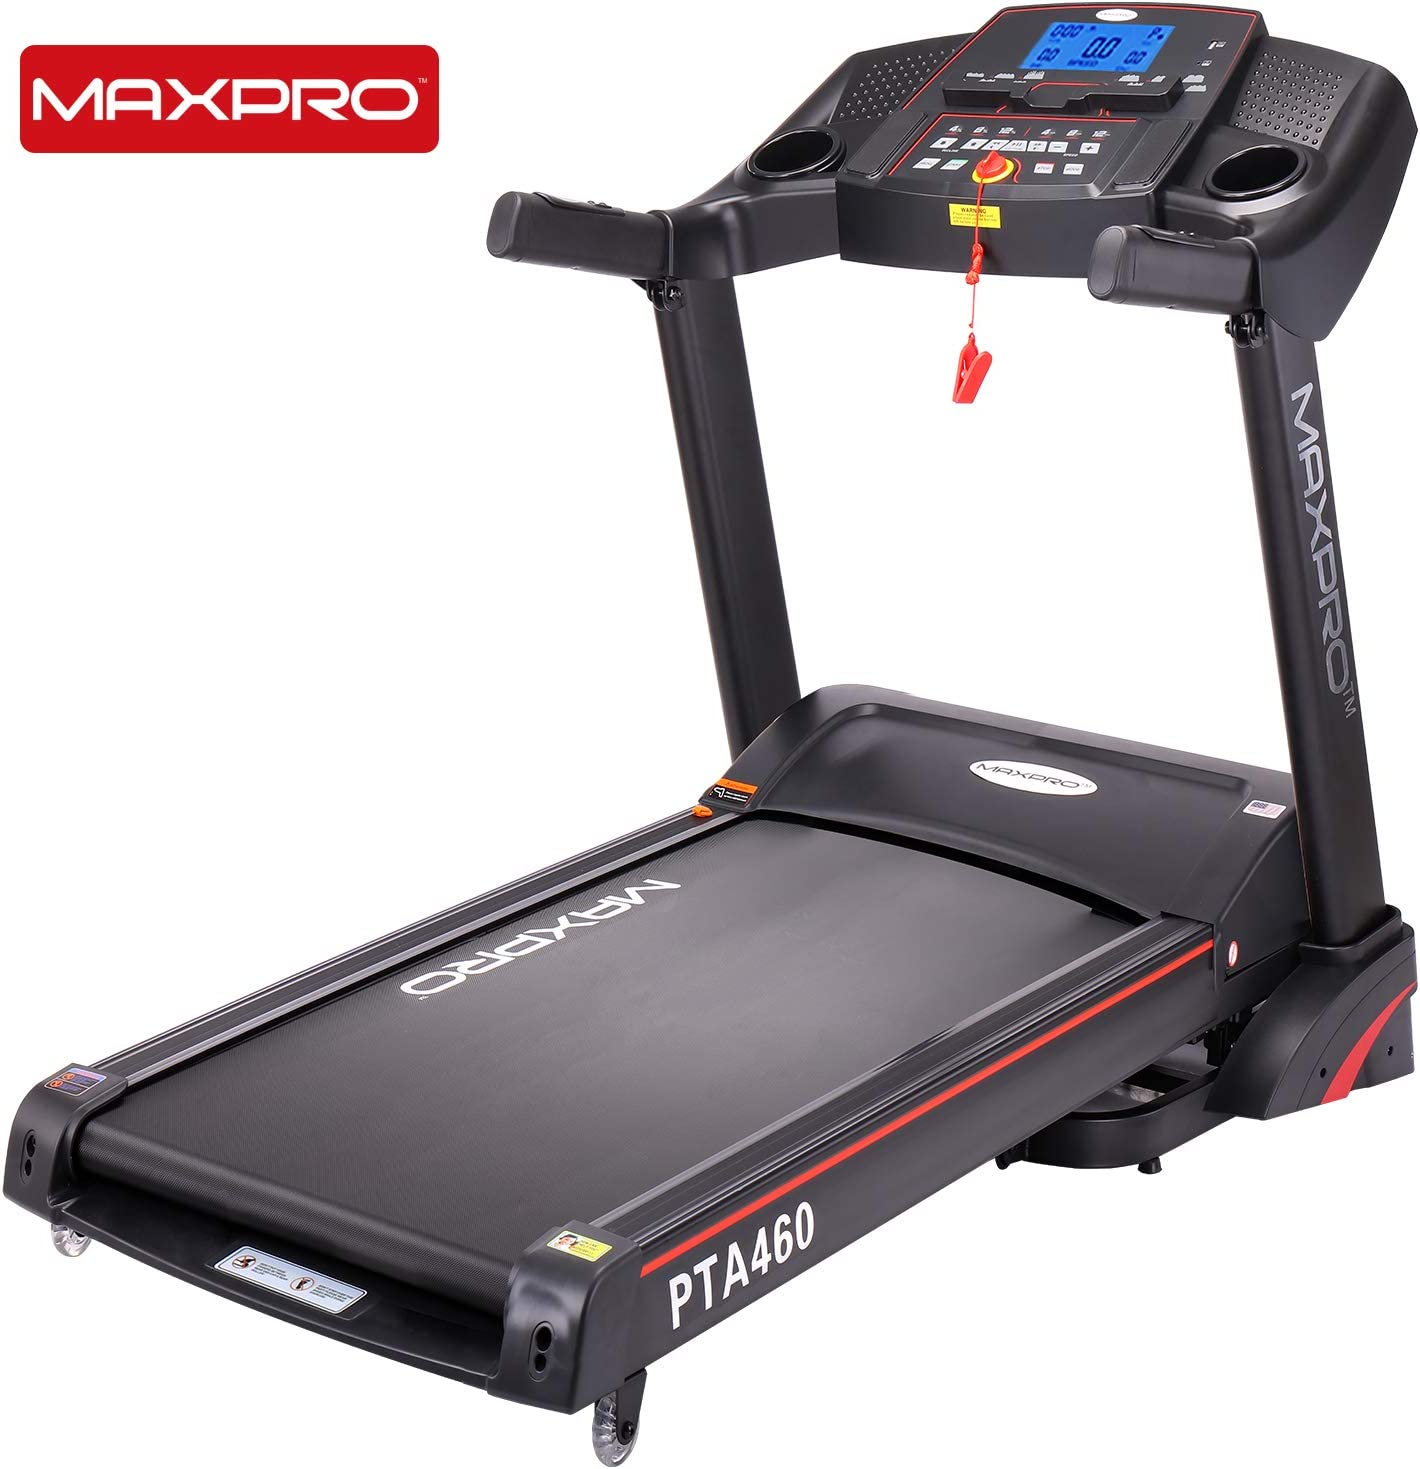 MAXPRO PTA460 2.5HP (5 HP Peak) Motorized treadmill